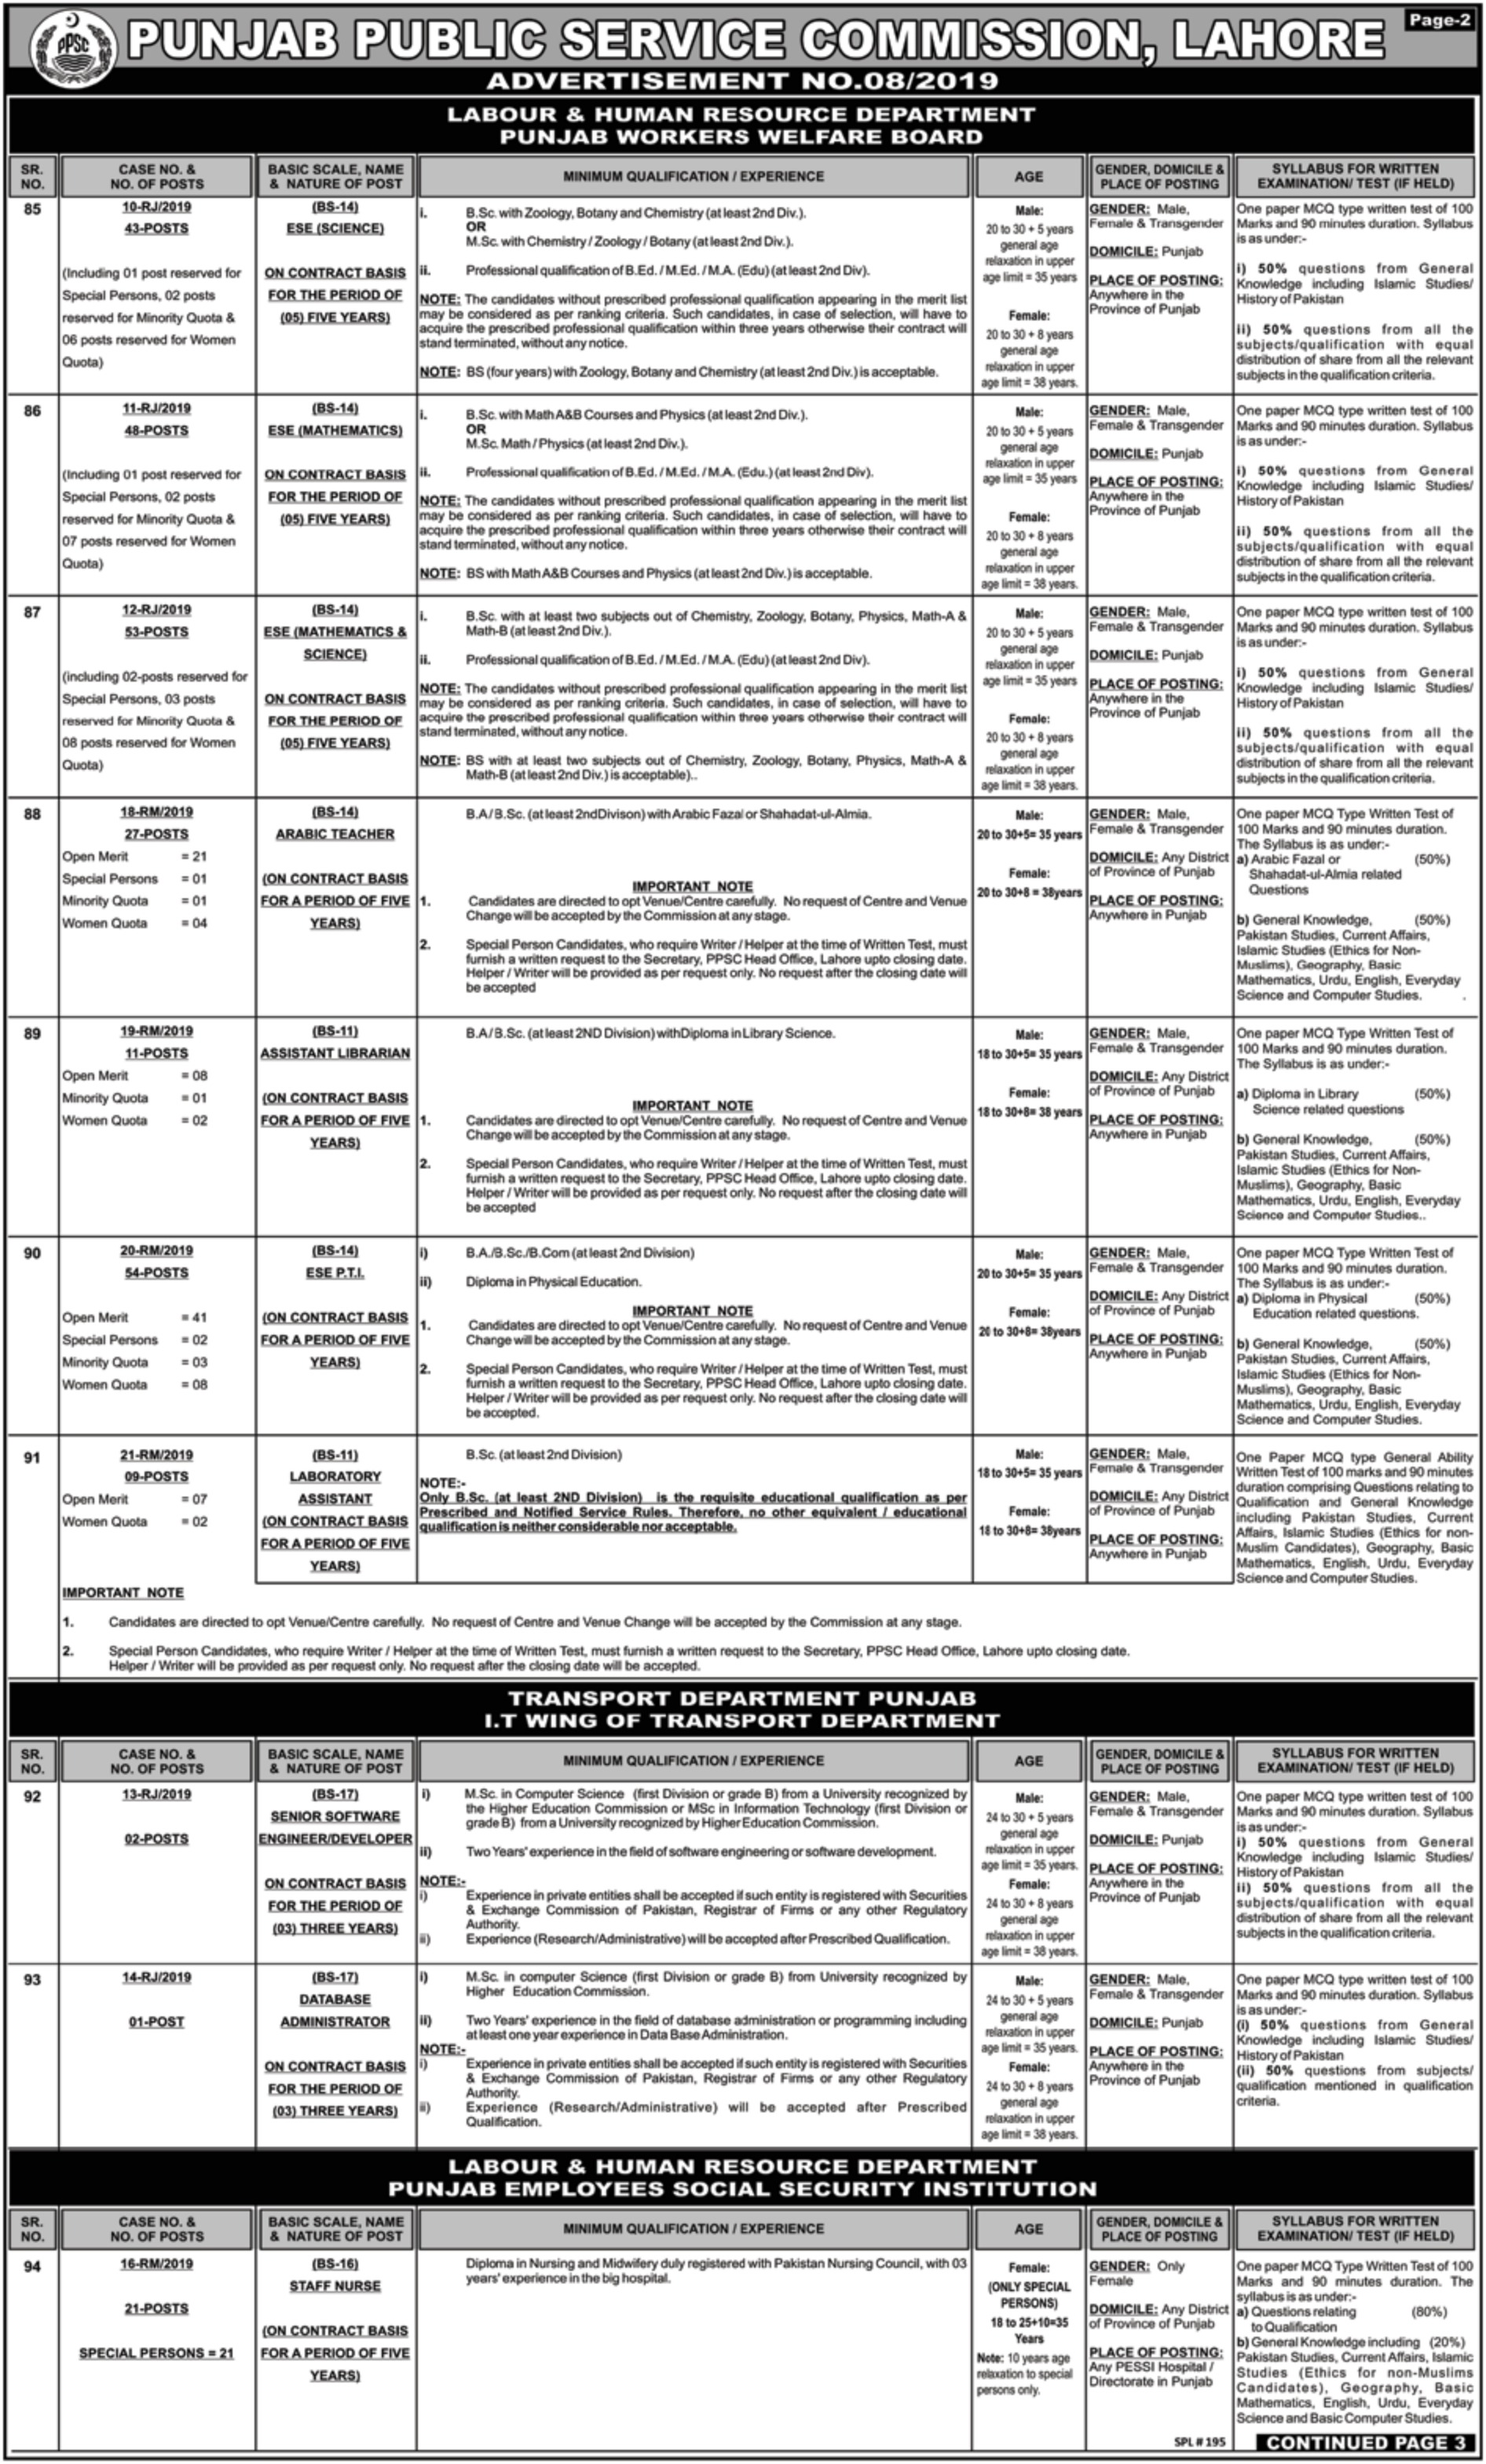 ppsc jobs 2019 advertisement 08-2019 punjab public service commission latest